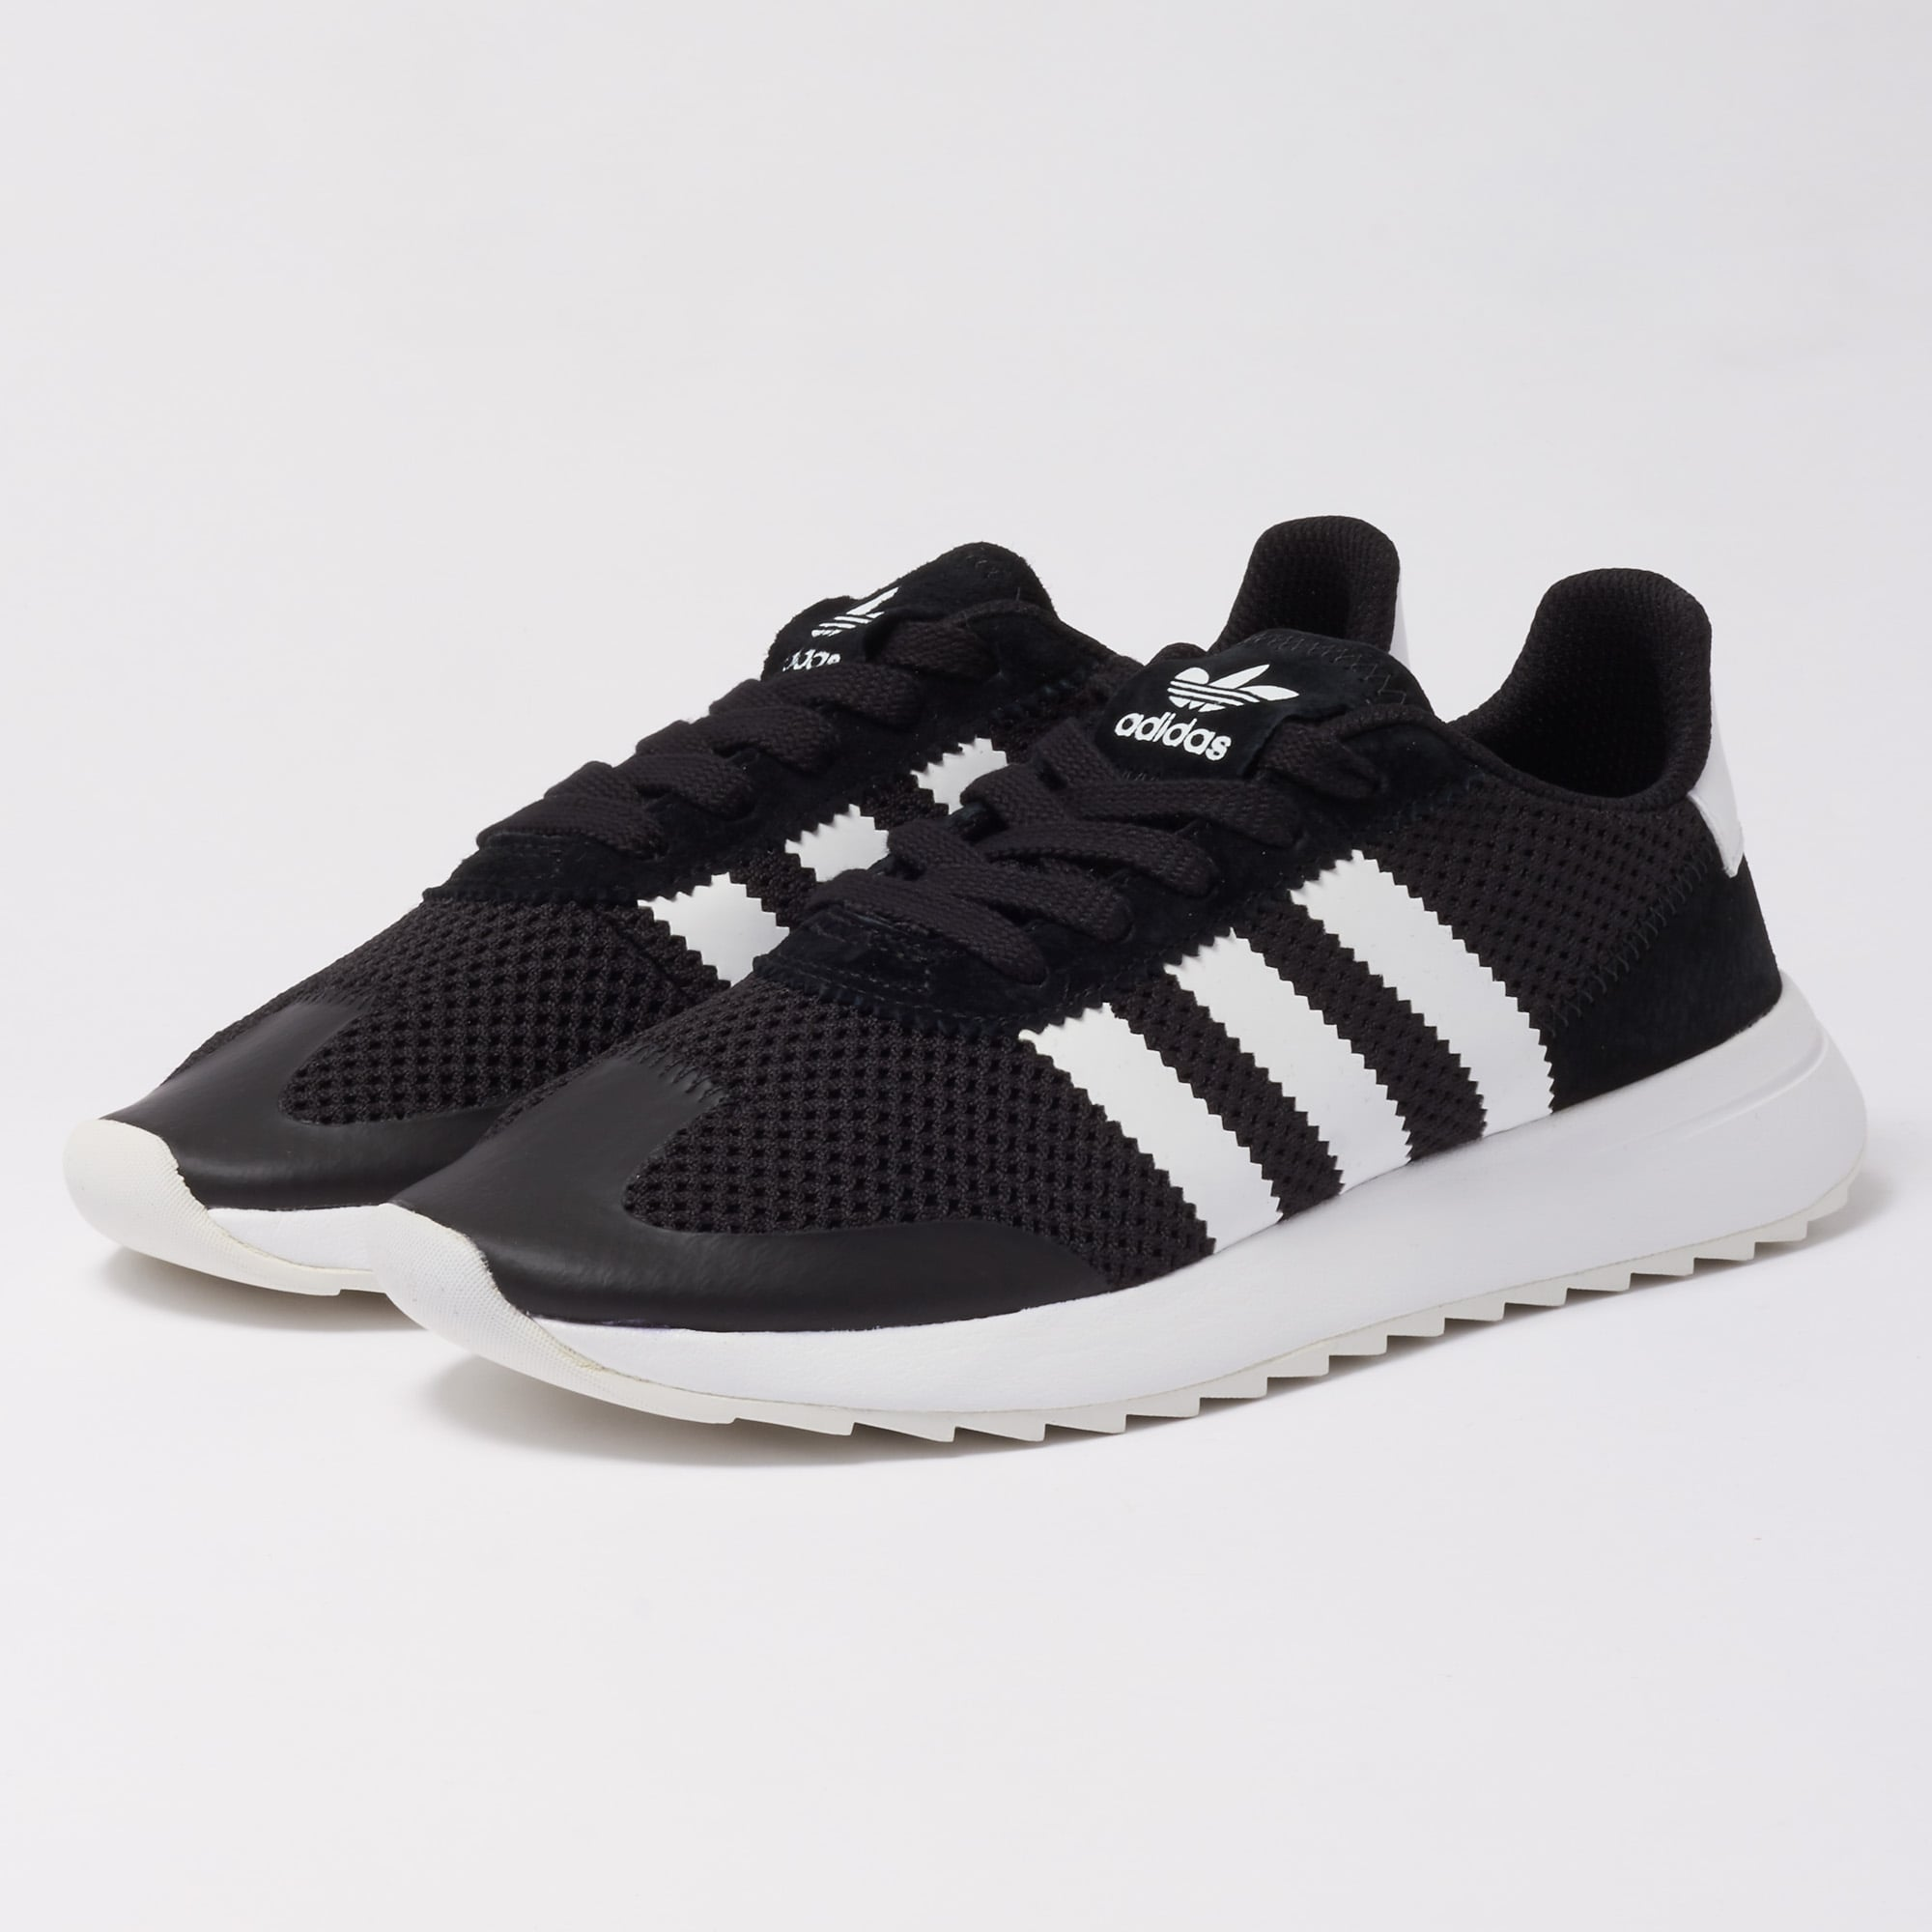 black and white adidas ladies trainers off 76% - www.usushimd.com